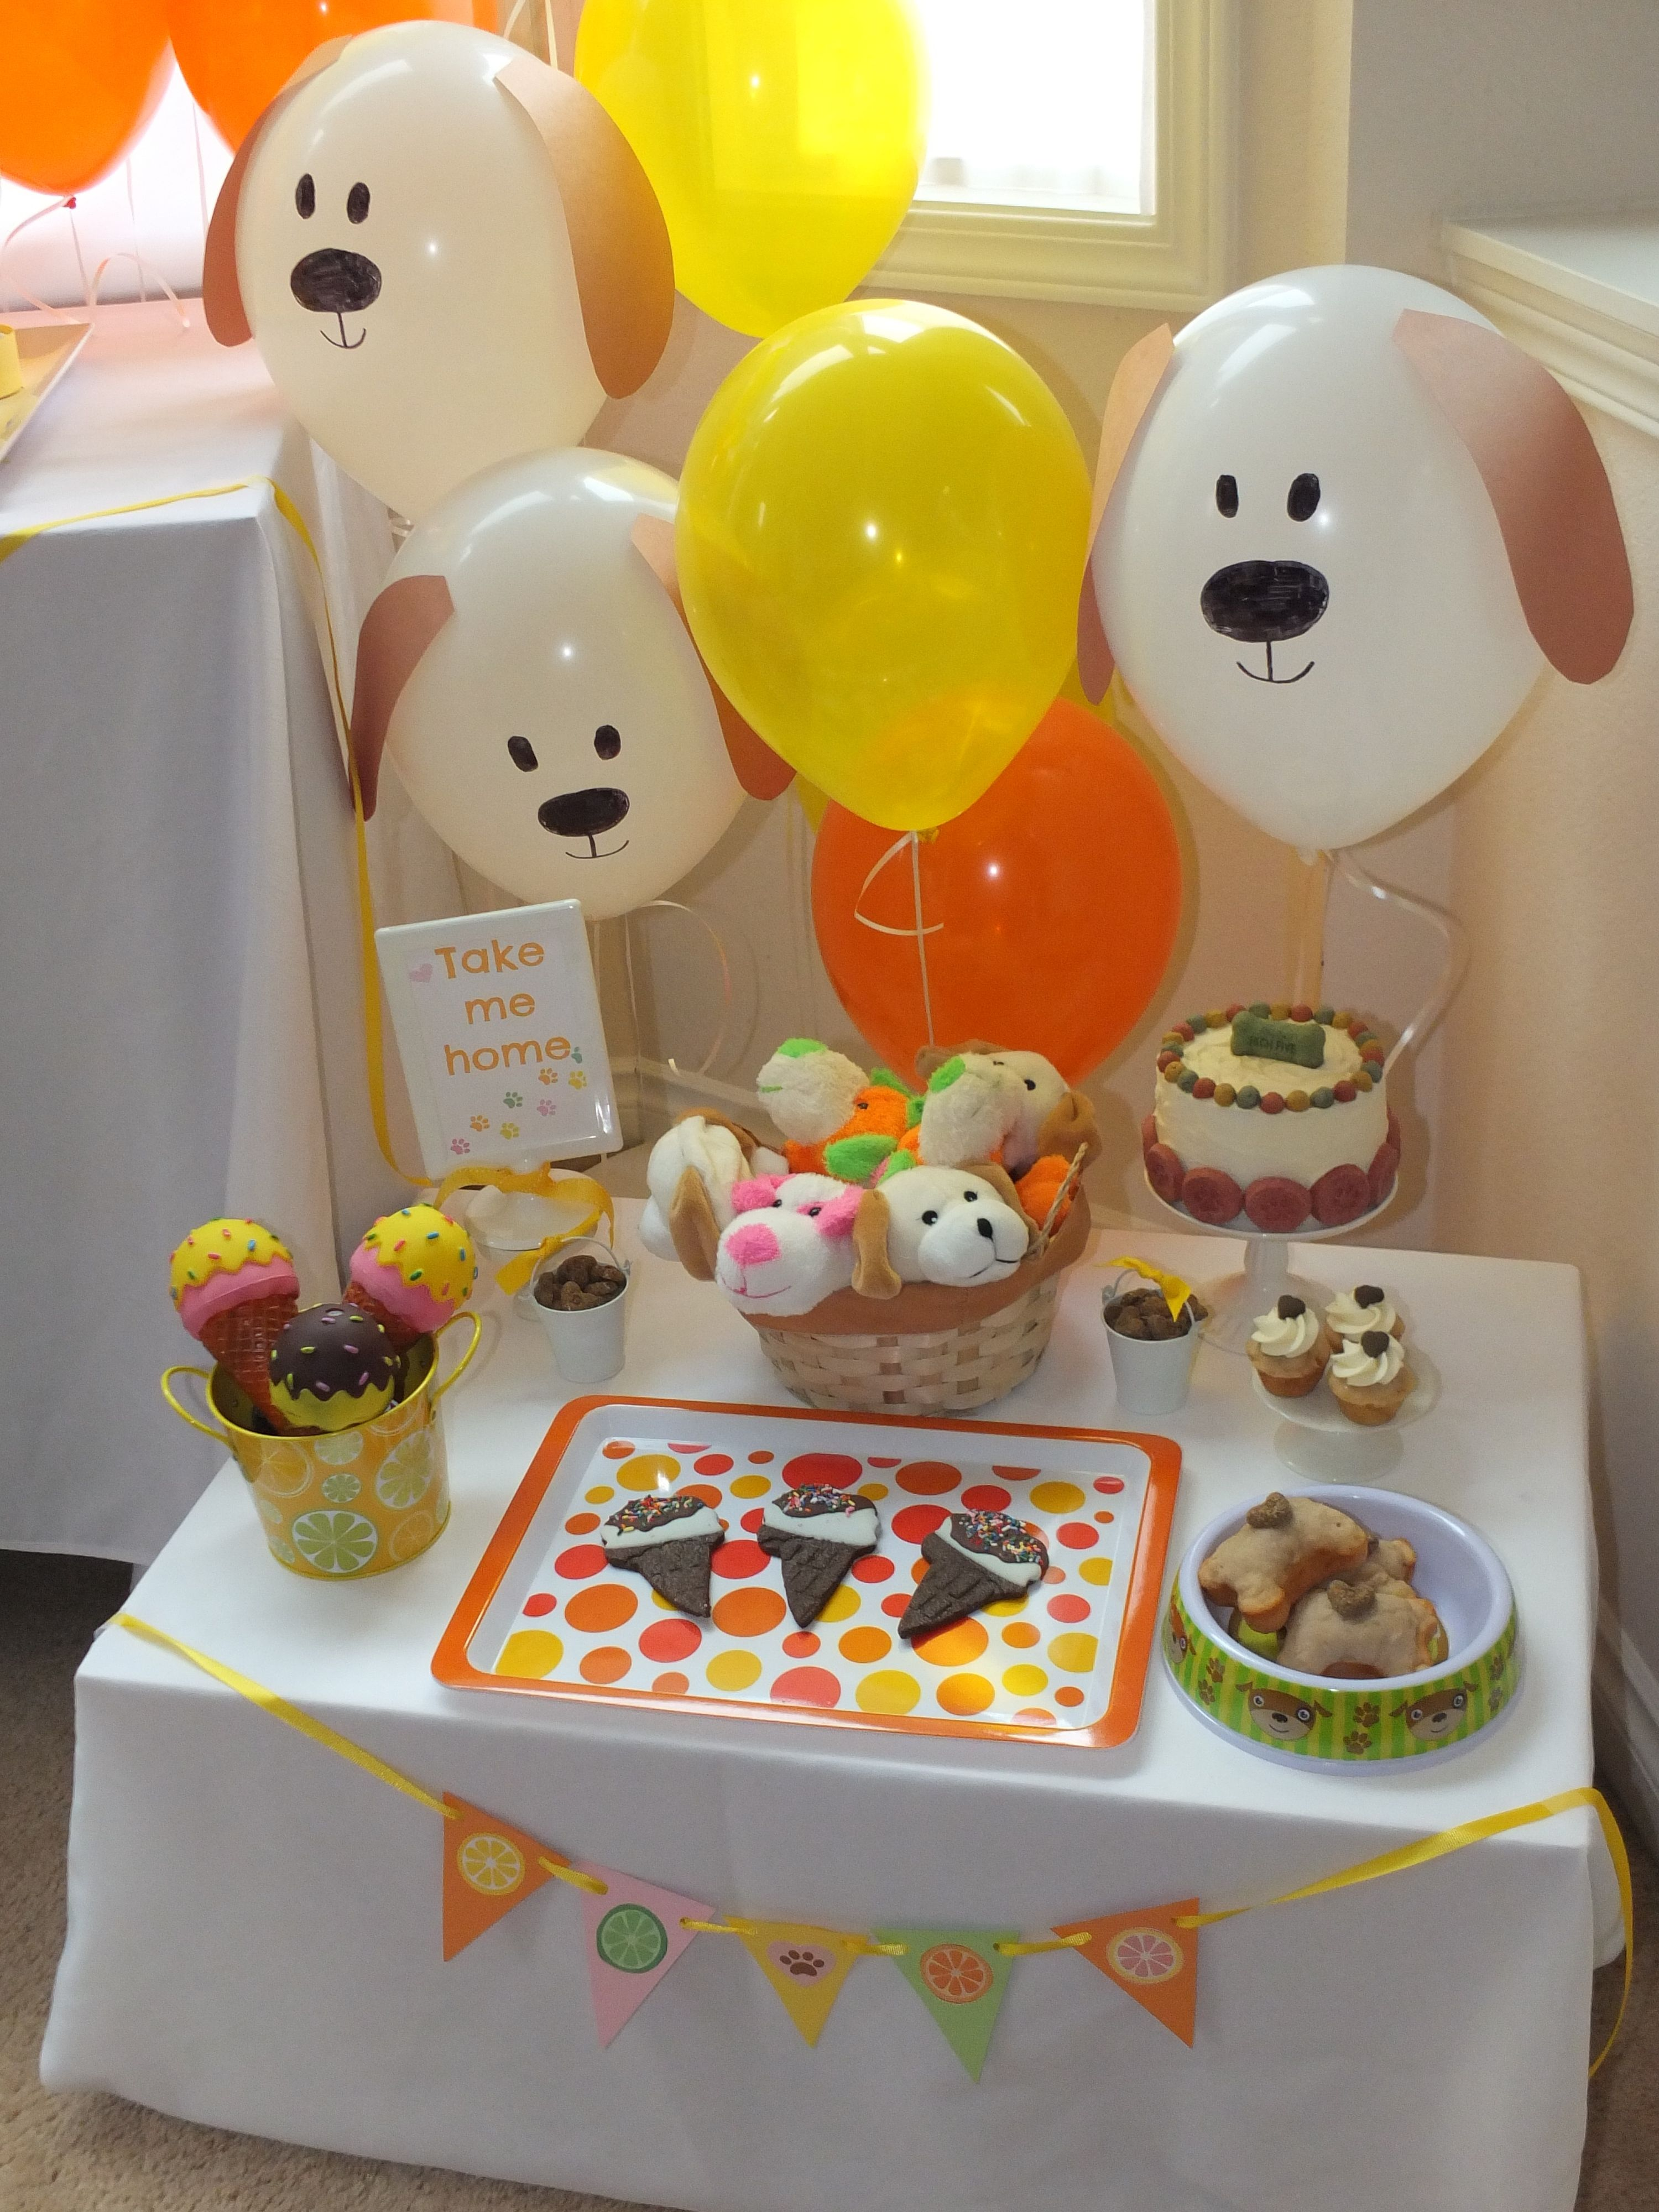 Superb Animal Party Theme Decorations Part - 13: Dog Days Of Summer Party, Puppy Party Ideas, Dog Theme Party, Summer Party,  Great Balloon Idea